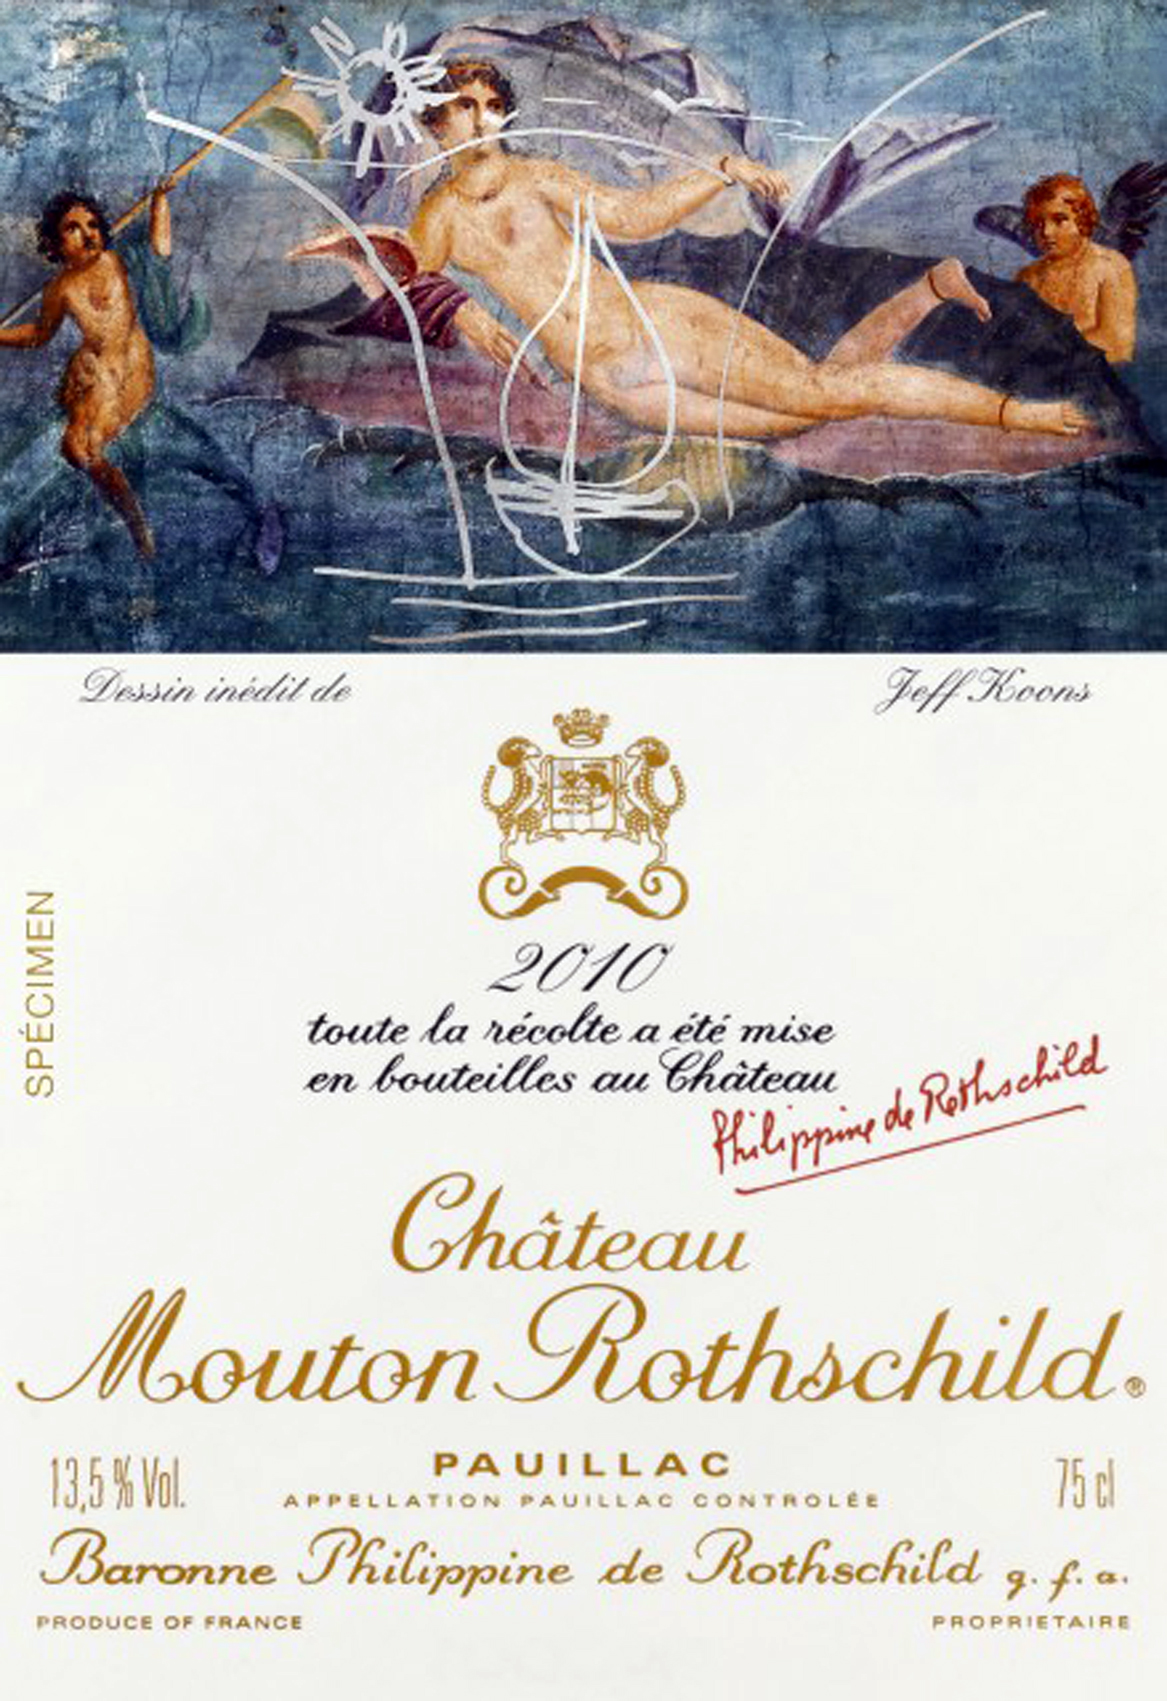 2010 Mouton Rothschild by Jeff Koons